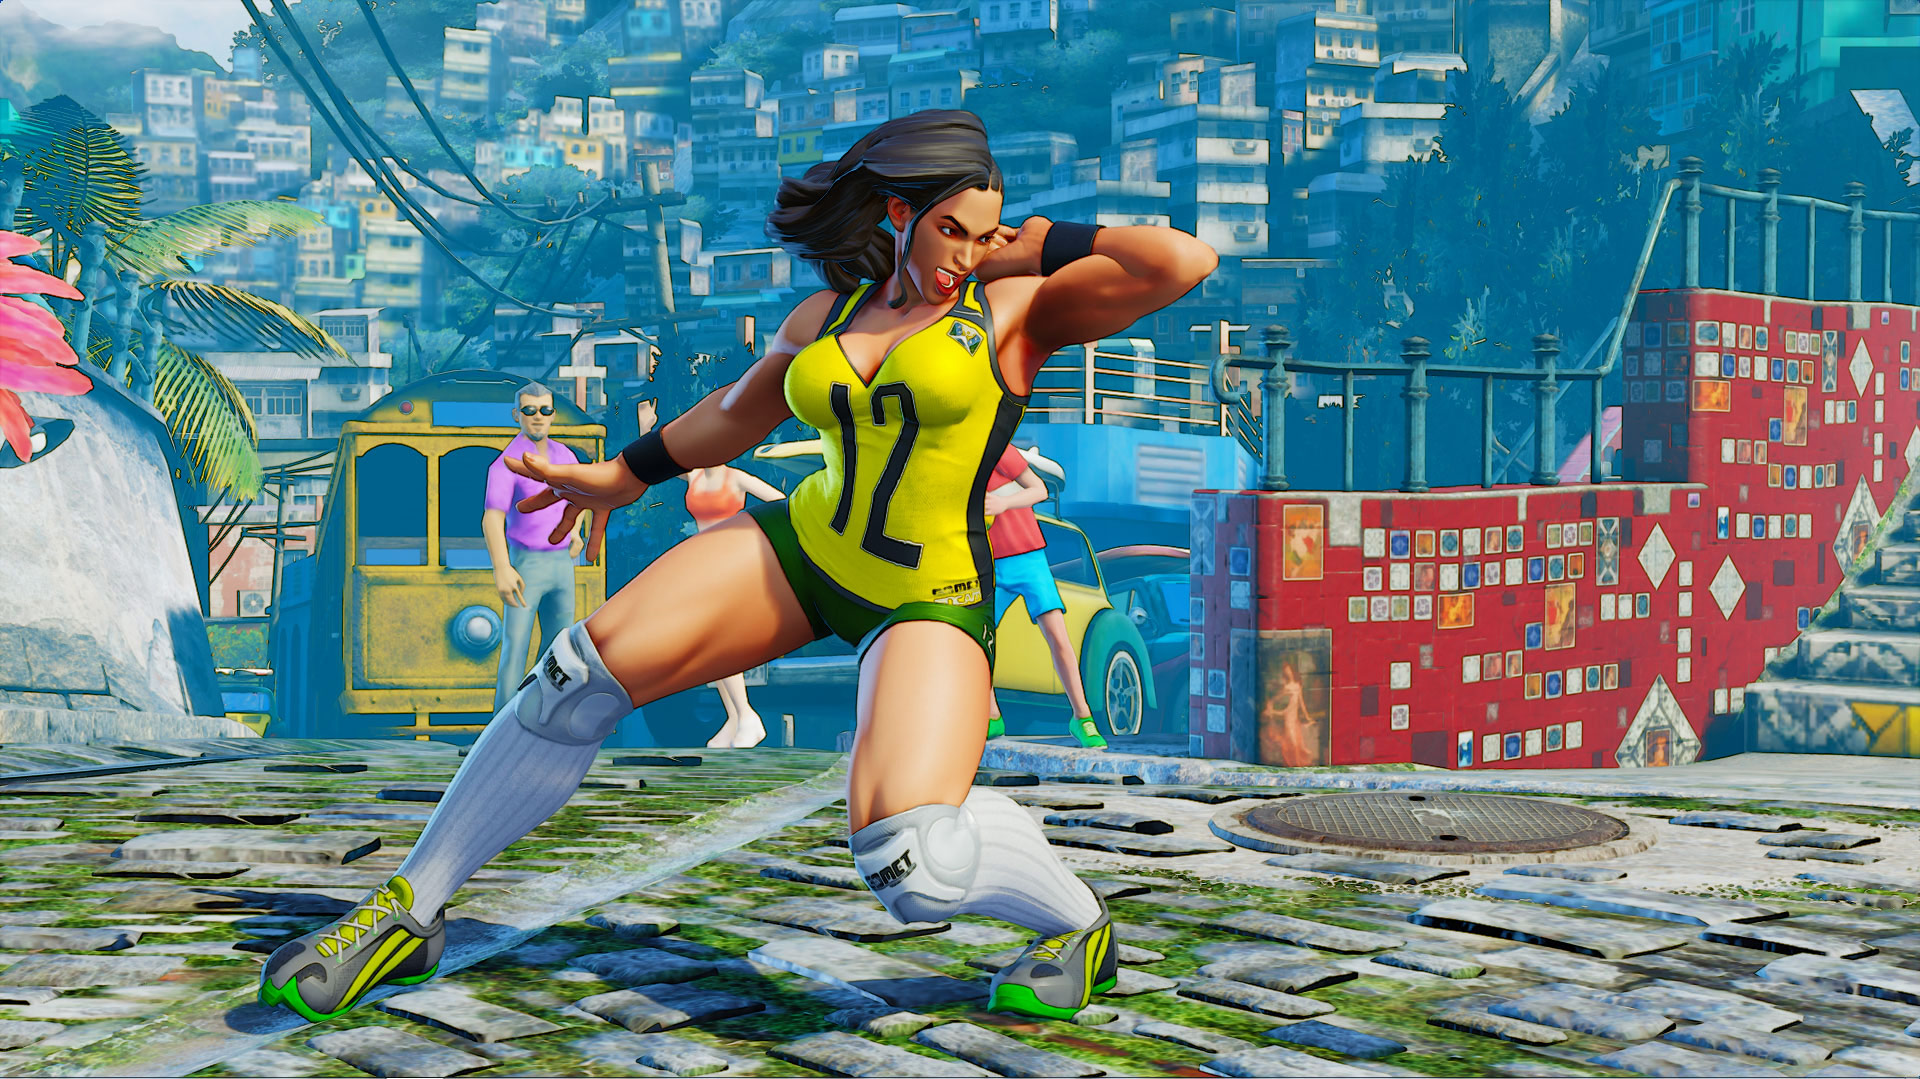 Street Fighter V Sport Outfits DLC Coming Soon